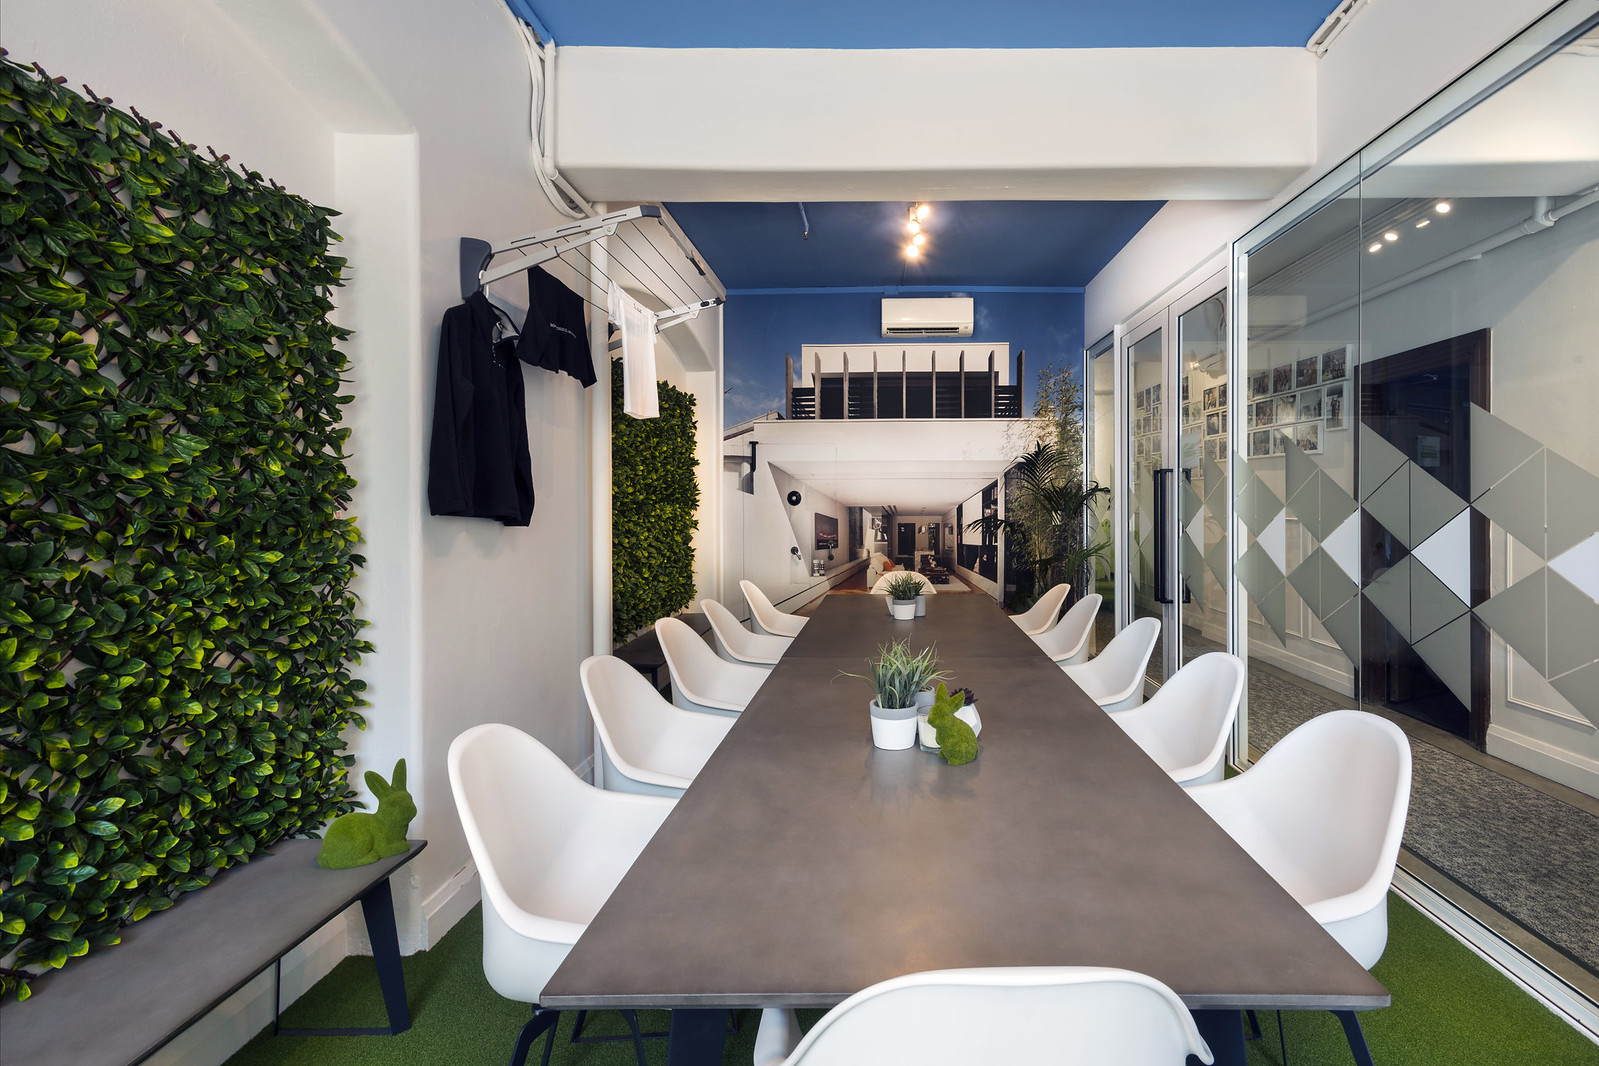 the houzz blog as we have an open floor plan our meeting rooms are always coveted spaces down the hall you ll see the first and largest of our meeting rooms